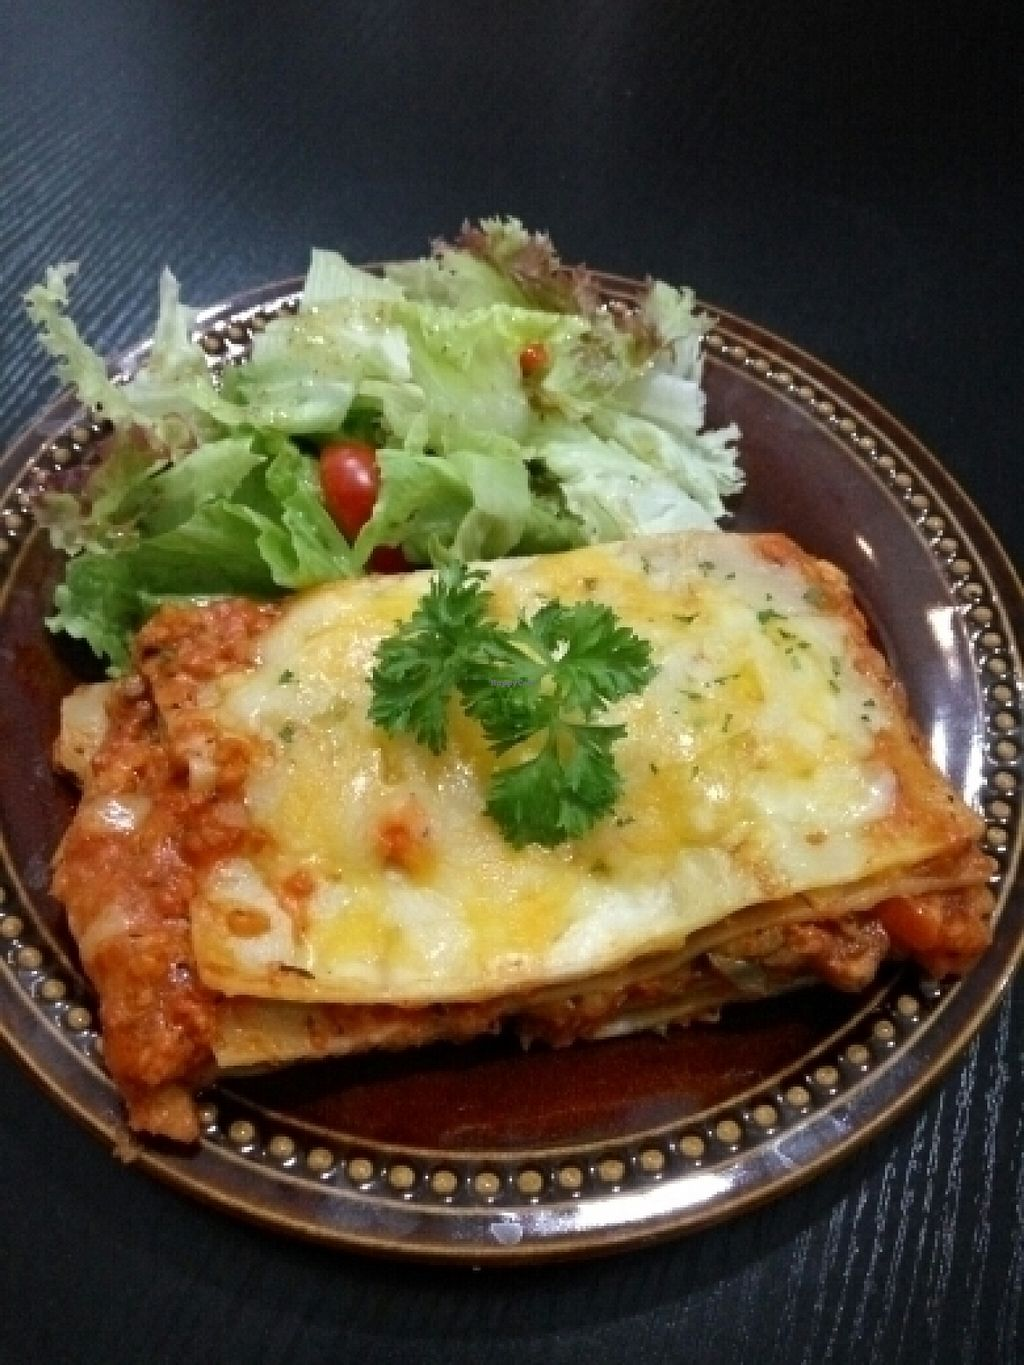 """Photo of Veggie Macau  by <a href=""""/members/profile/pianista"""">pianista</a> <br/>Vegetarian lasagne <br/> July 18, 2016  - <a href='/contact/abuse/image/53199/160677'>Report</a>"""